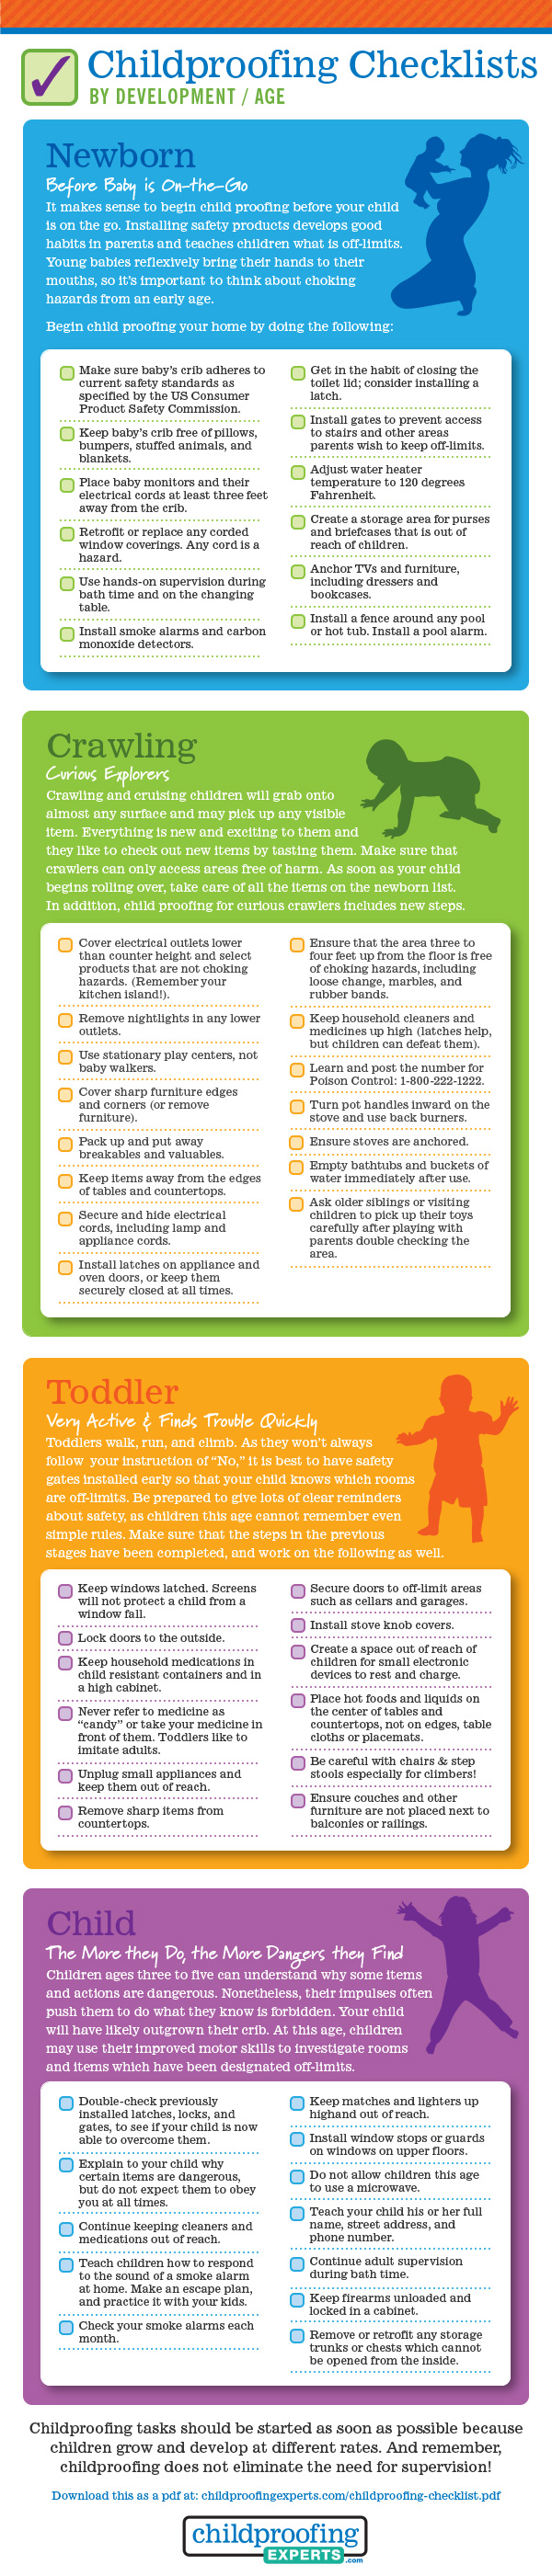 Childproofing Checklist by Developemnt / Age